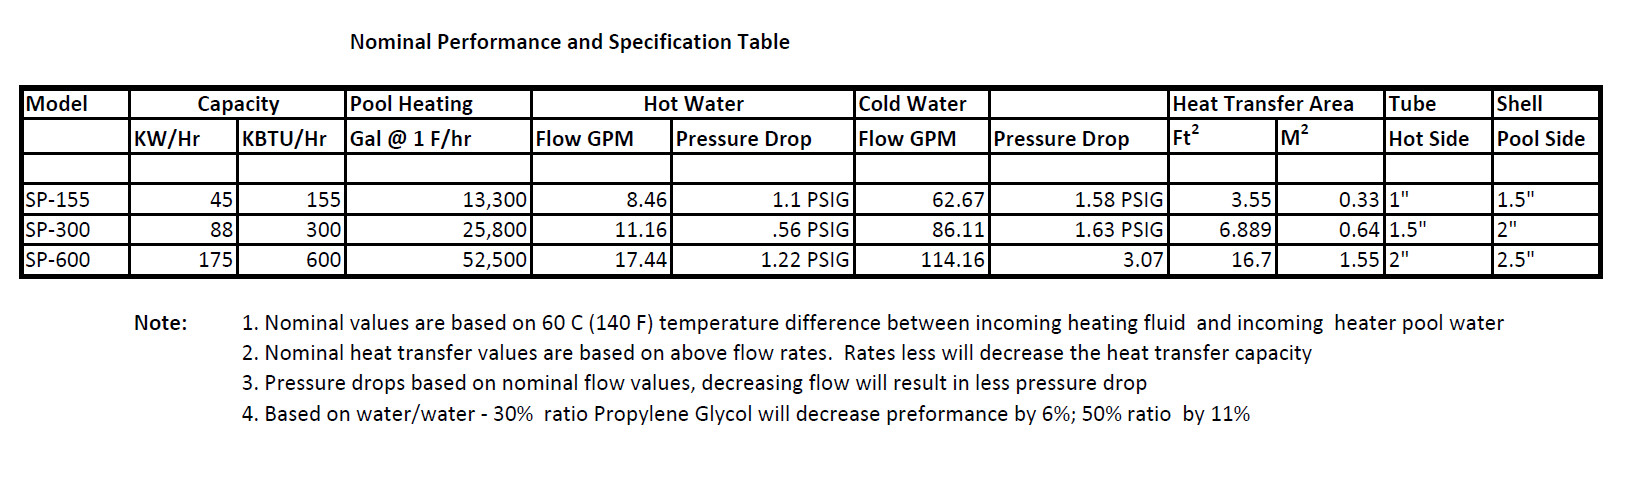 swimming pool heat exchanger specifications chart